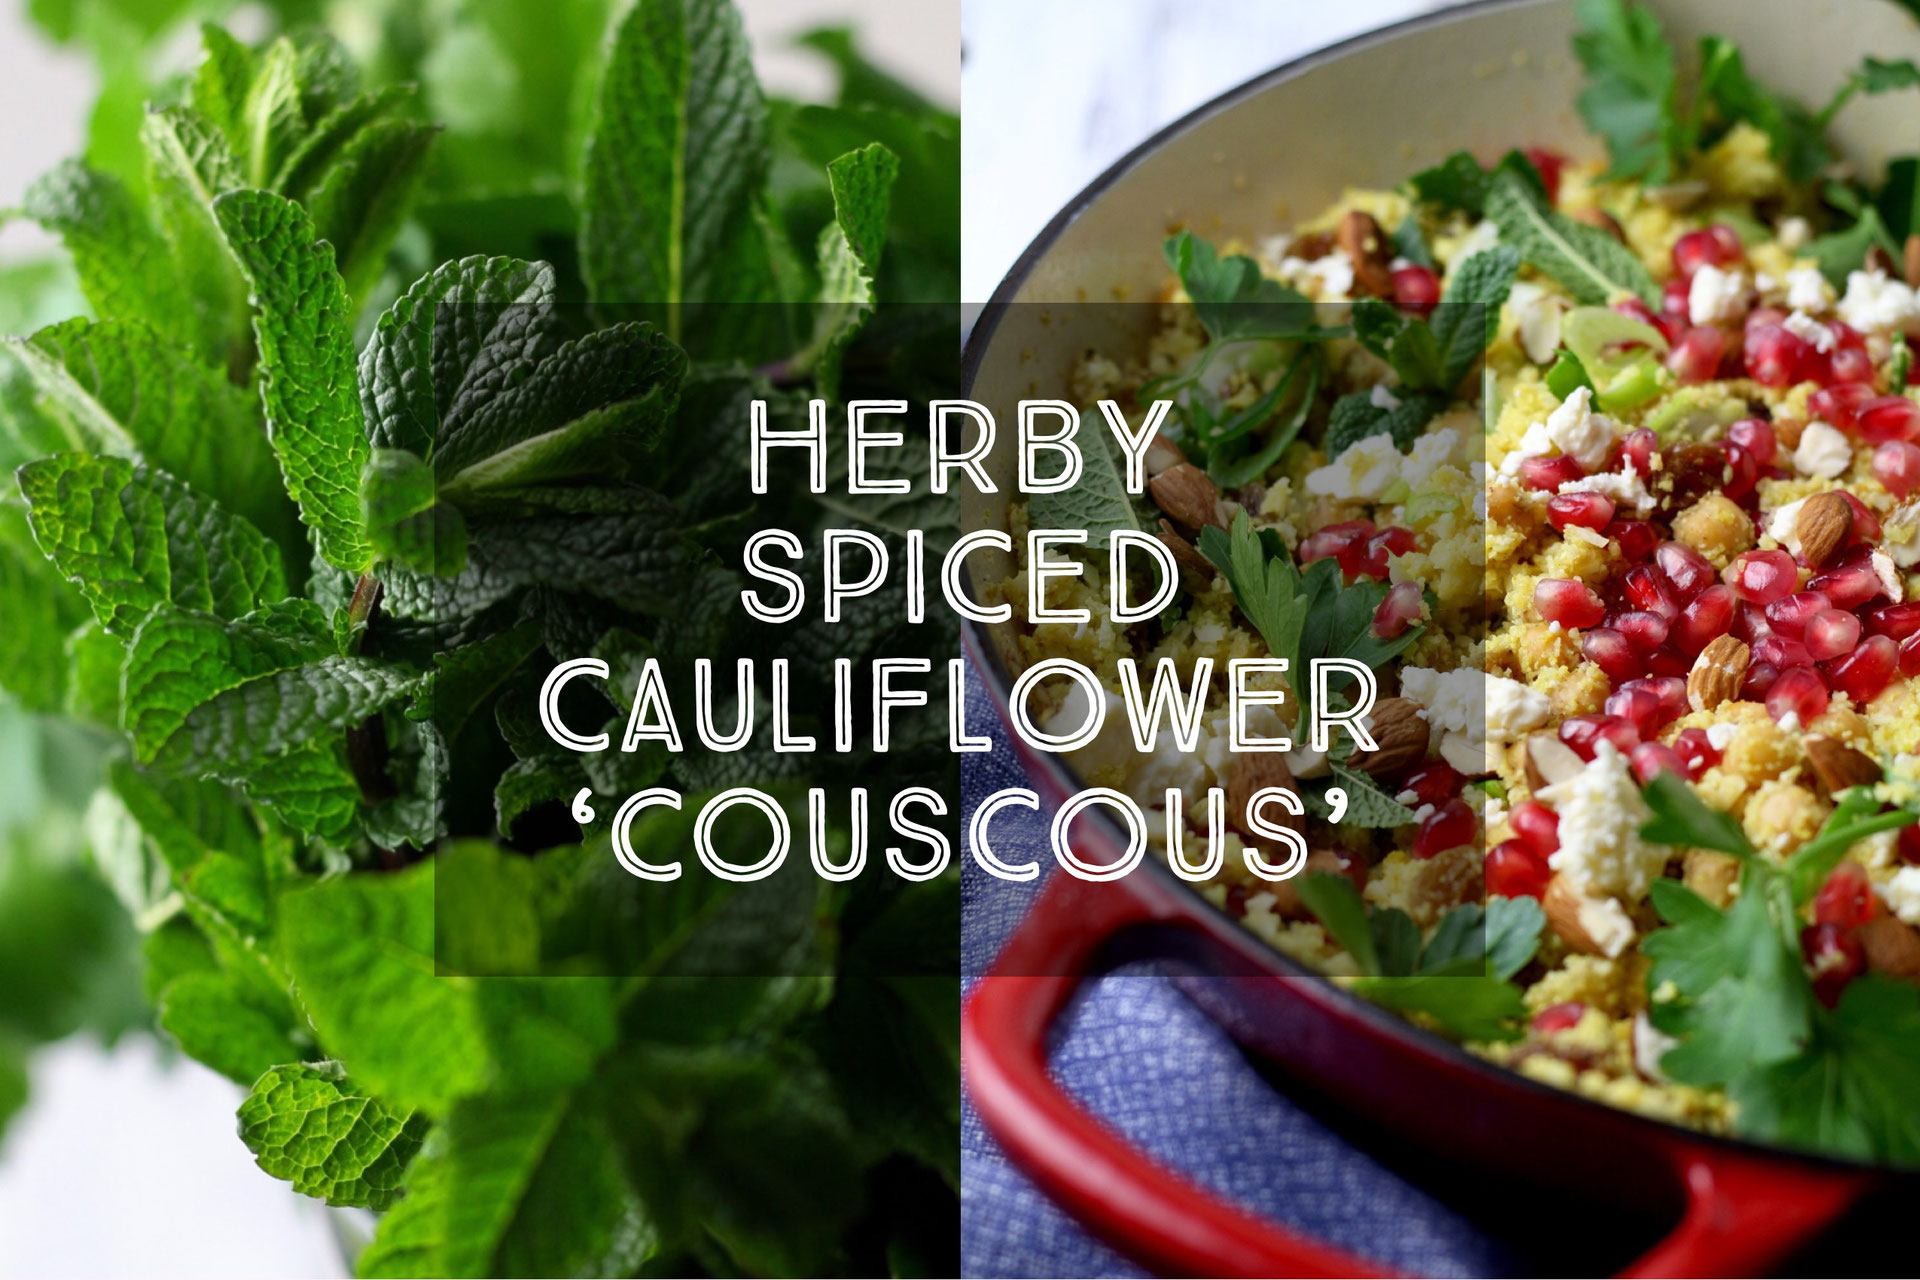 Herby Spiced Cauliflower Couscous